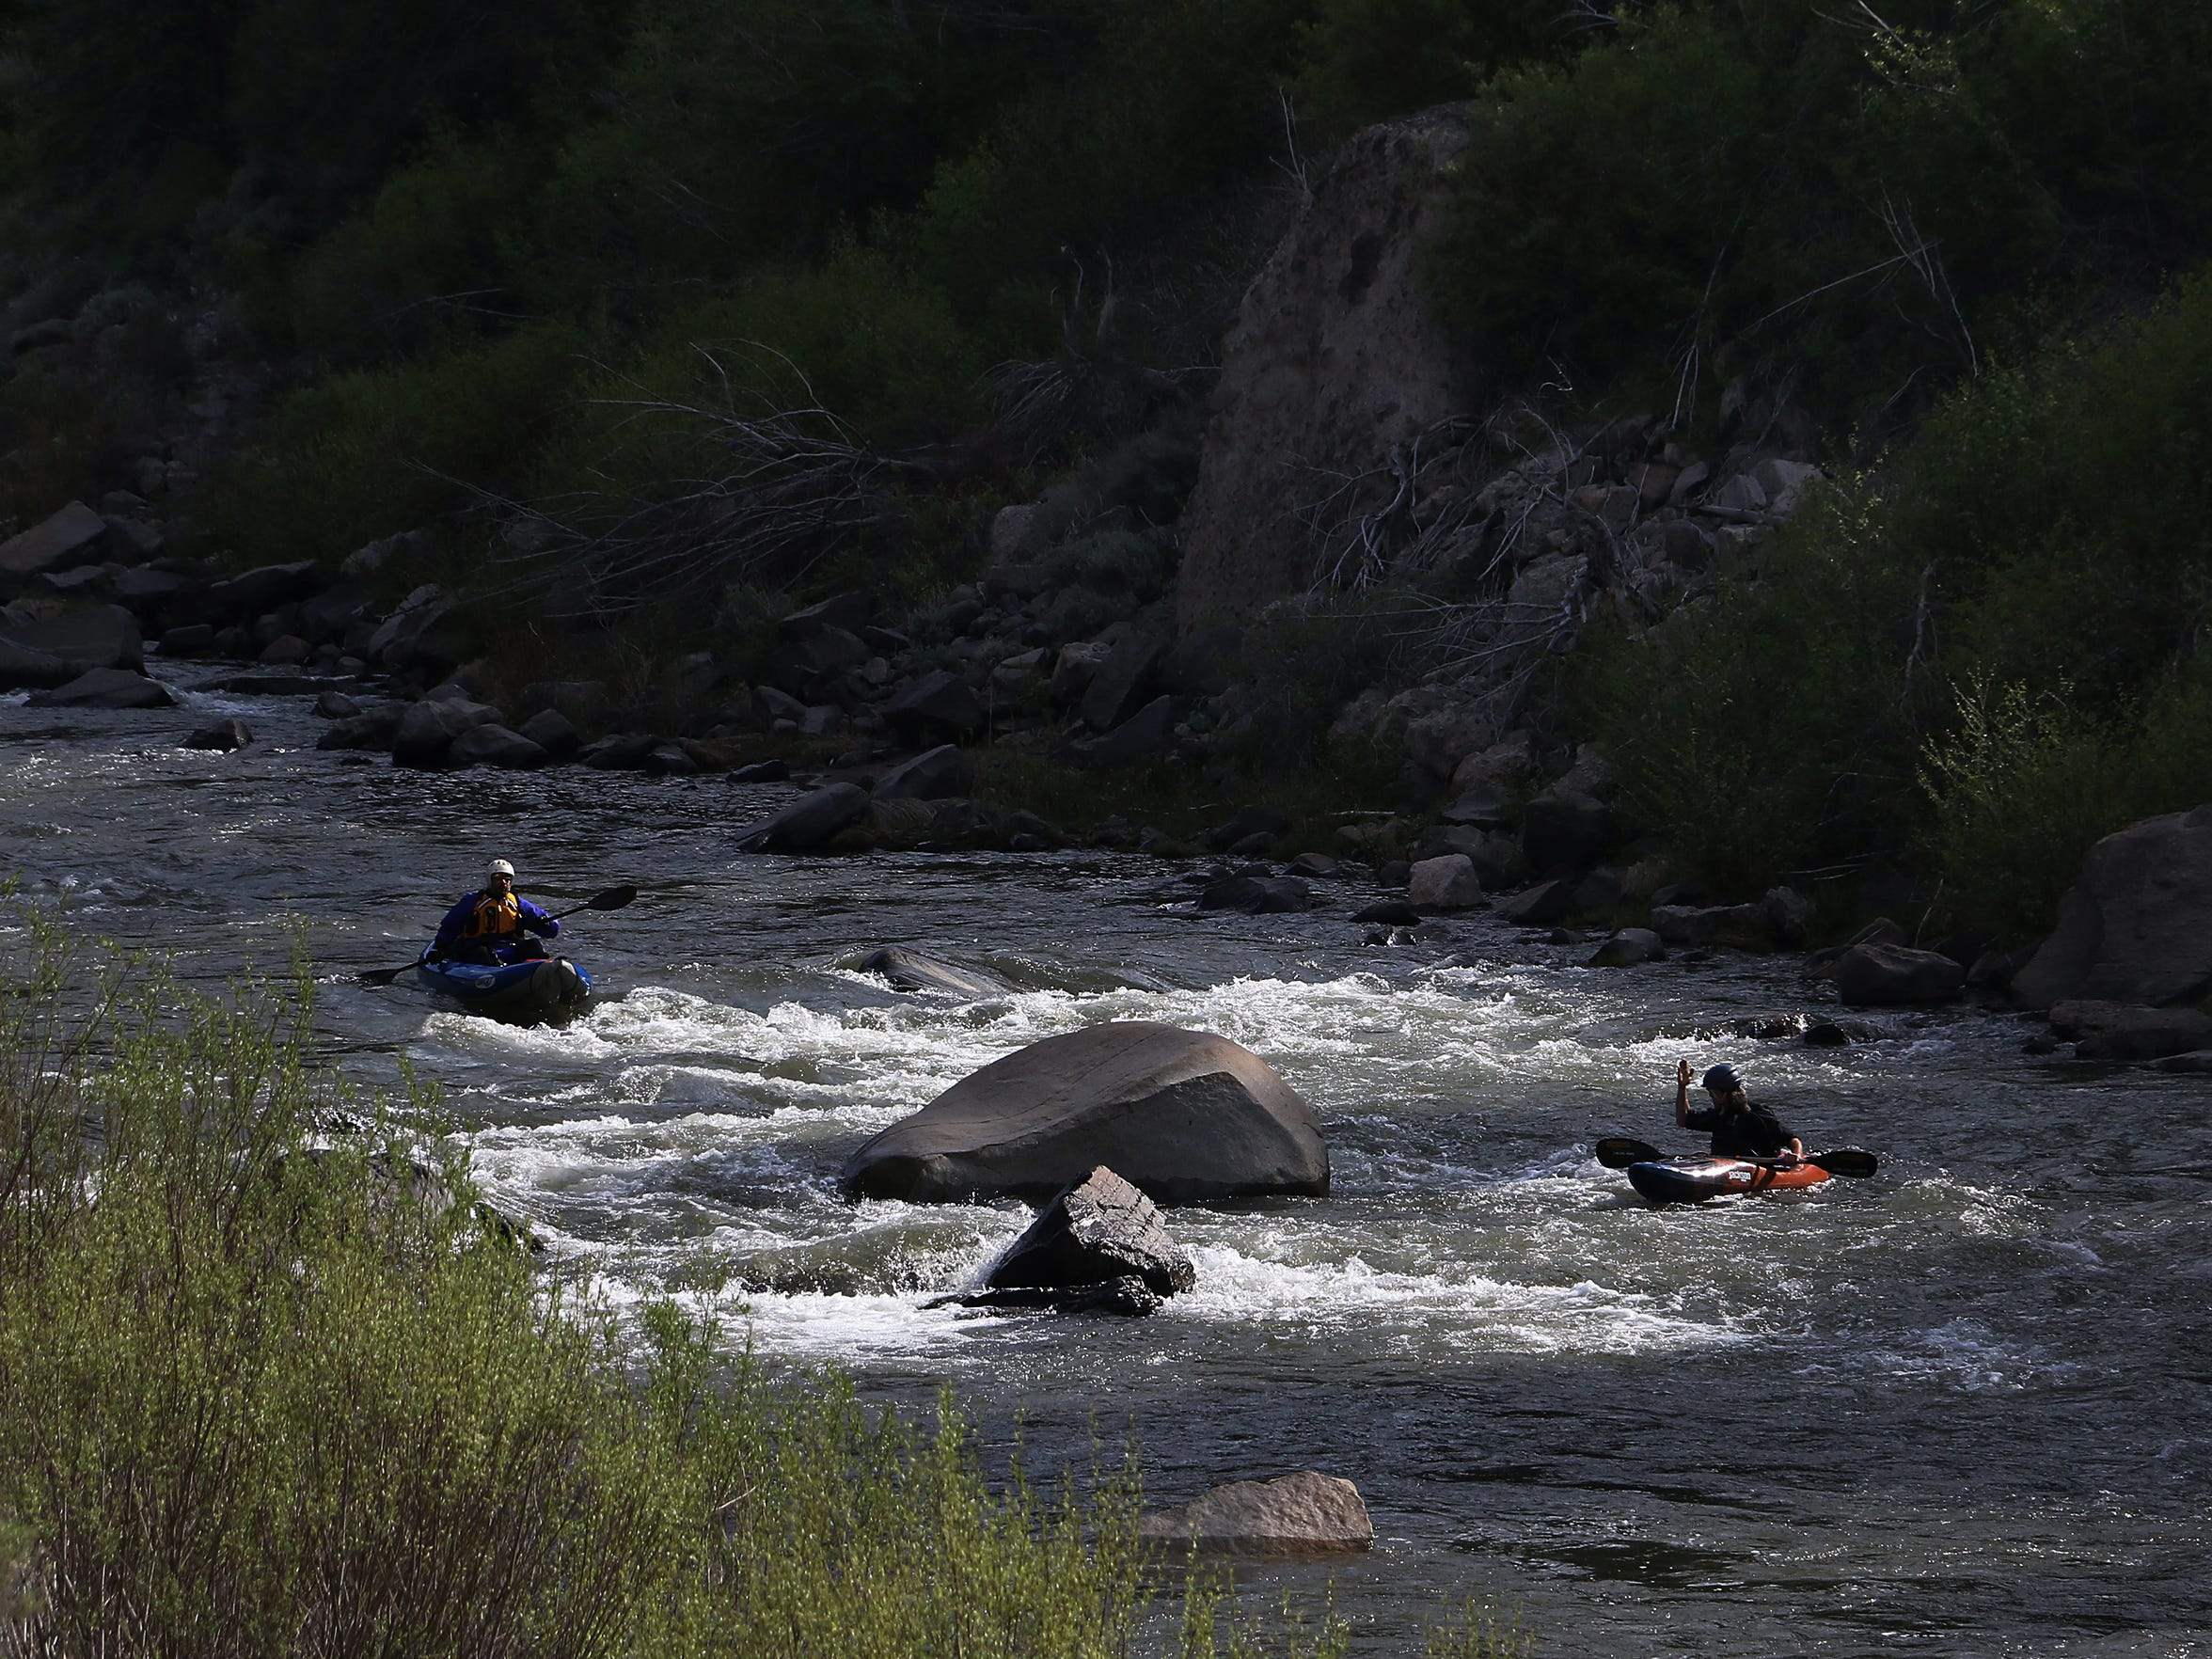 Preparing to run rapids on the Truckee River between Truckee, Calif., and Verdi, Nev. RGJ reporters Ben Spillman and Jason Bean paddle the Truckee River from Truckee to Pyramid Lake during May of 2016.